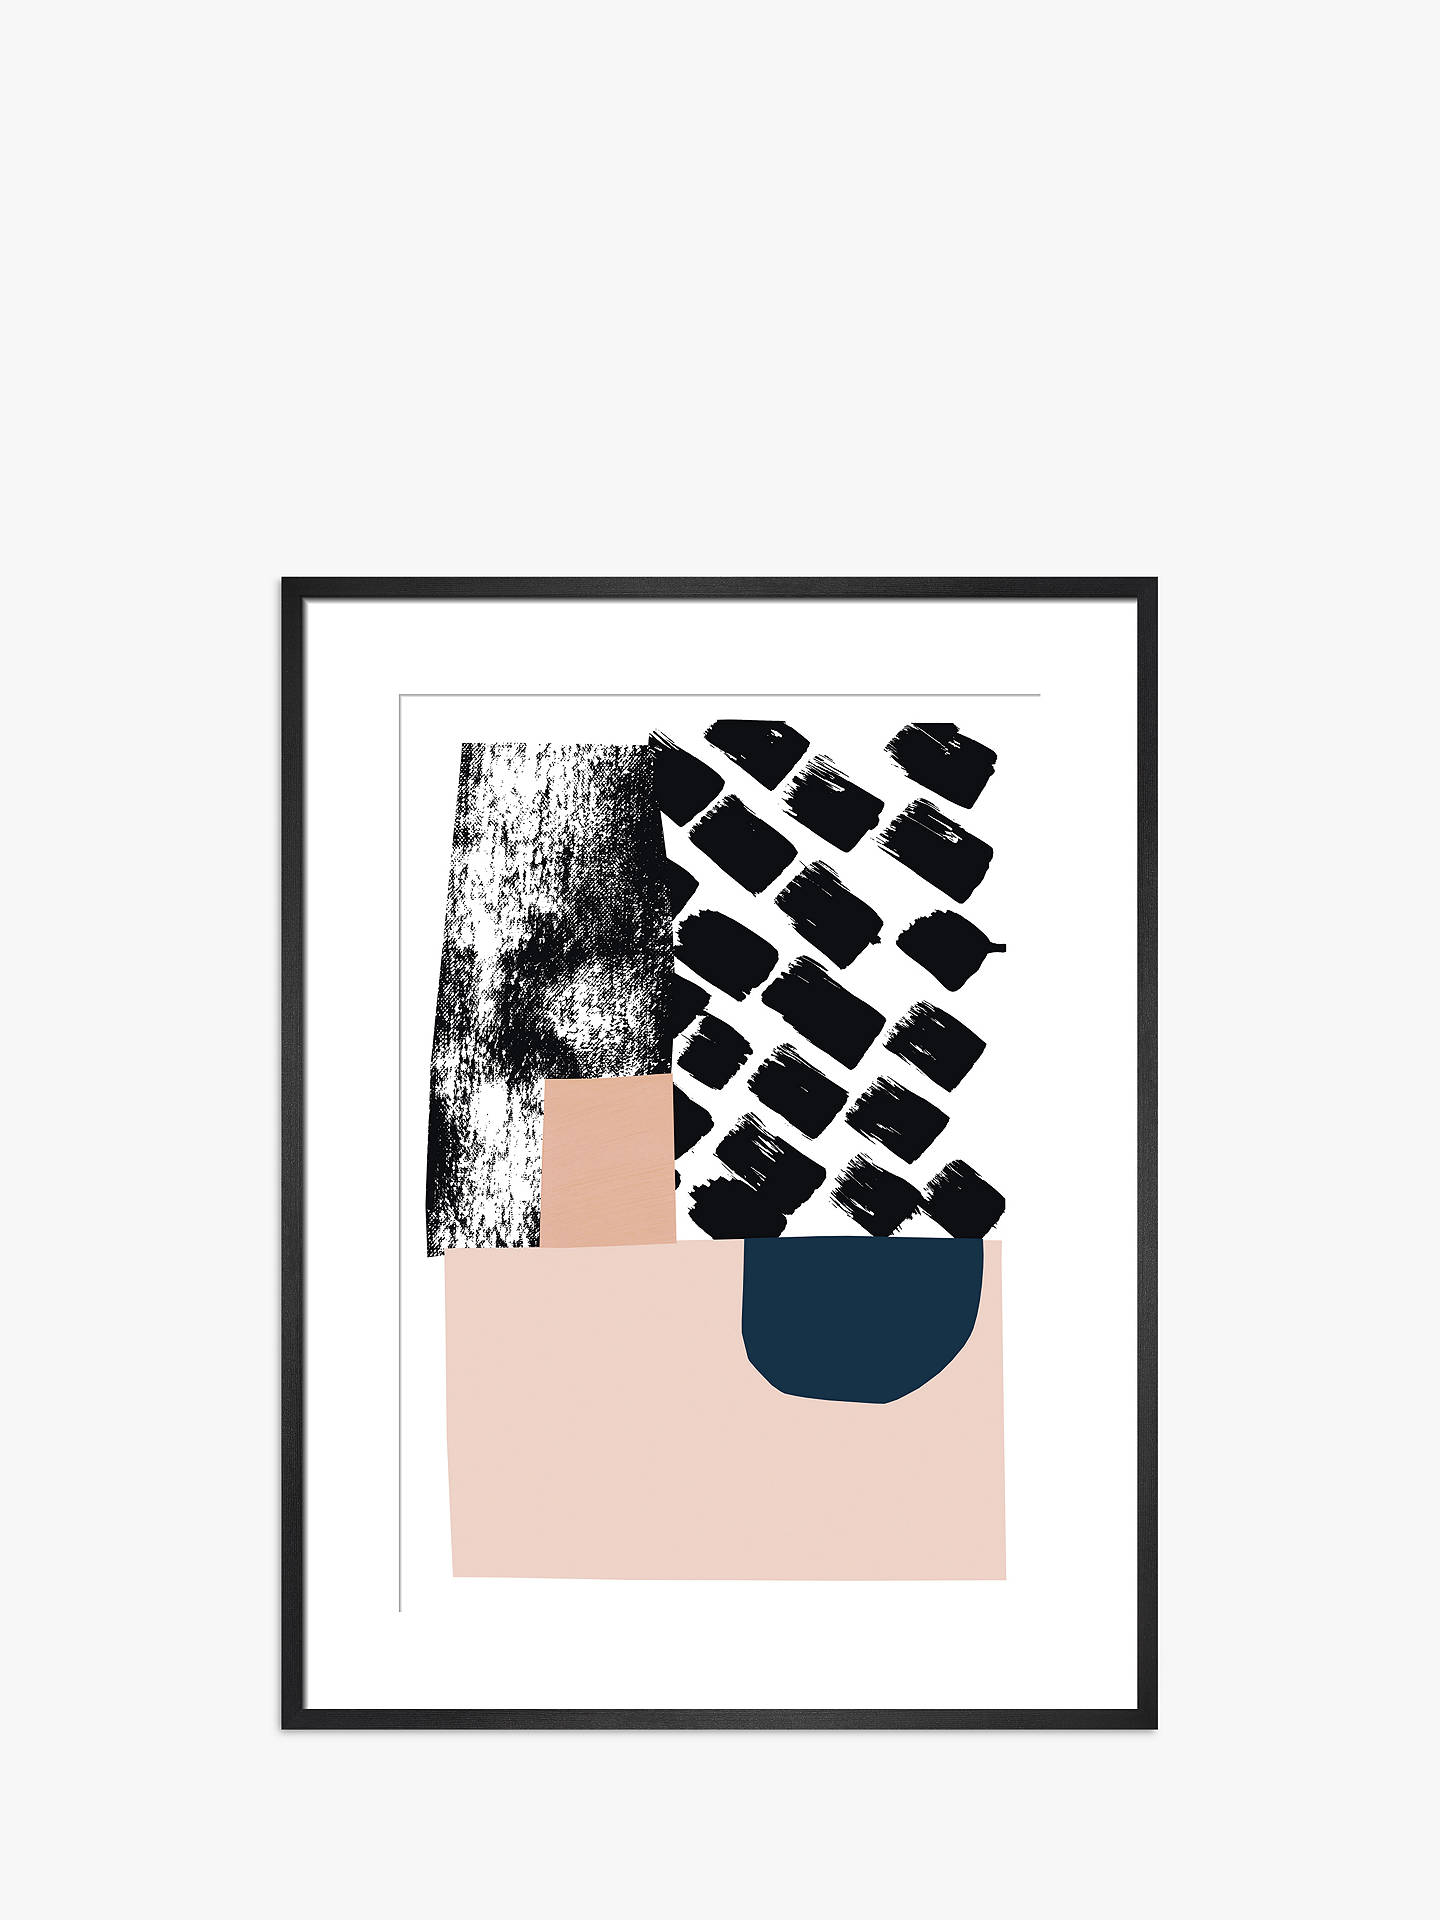 Buy Lizzie Hillier - Counter Balance, Black Framed Print, 60 x 45cm Online at johnlewis.com